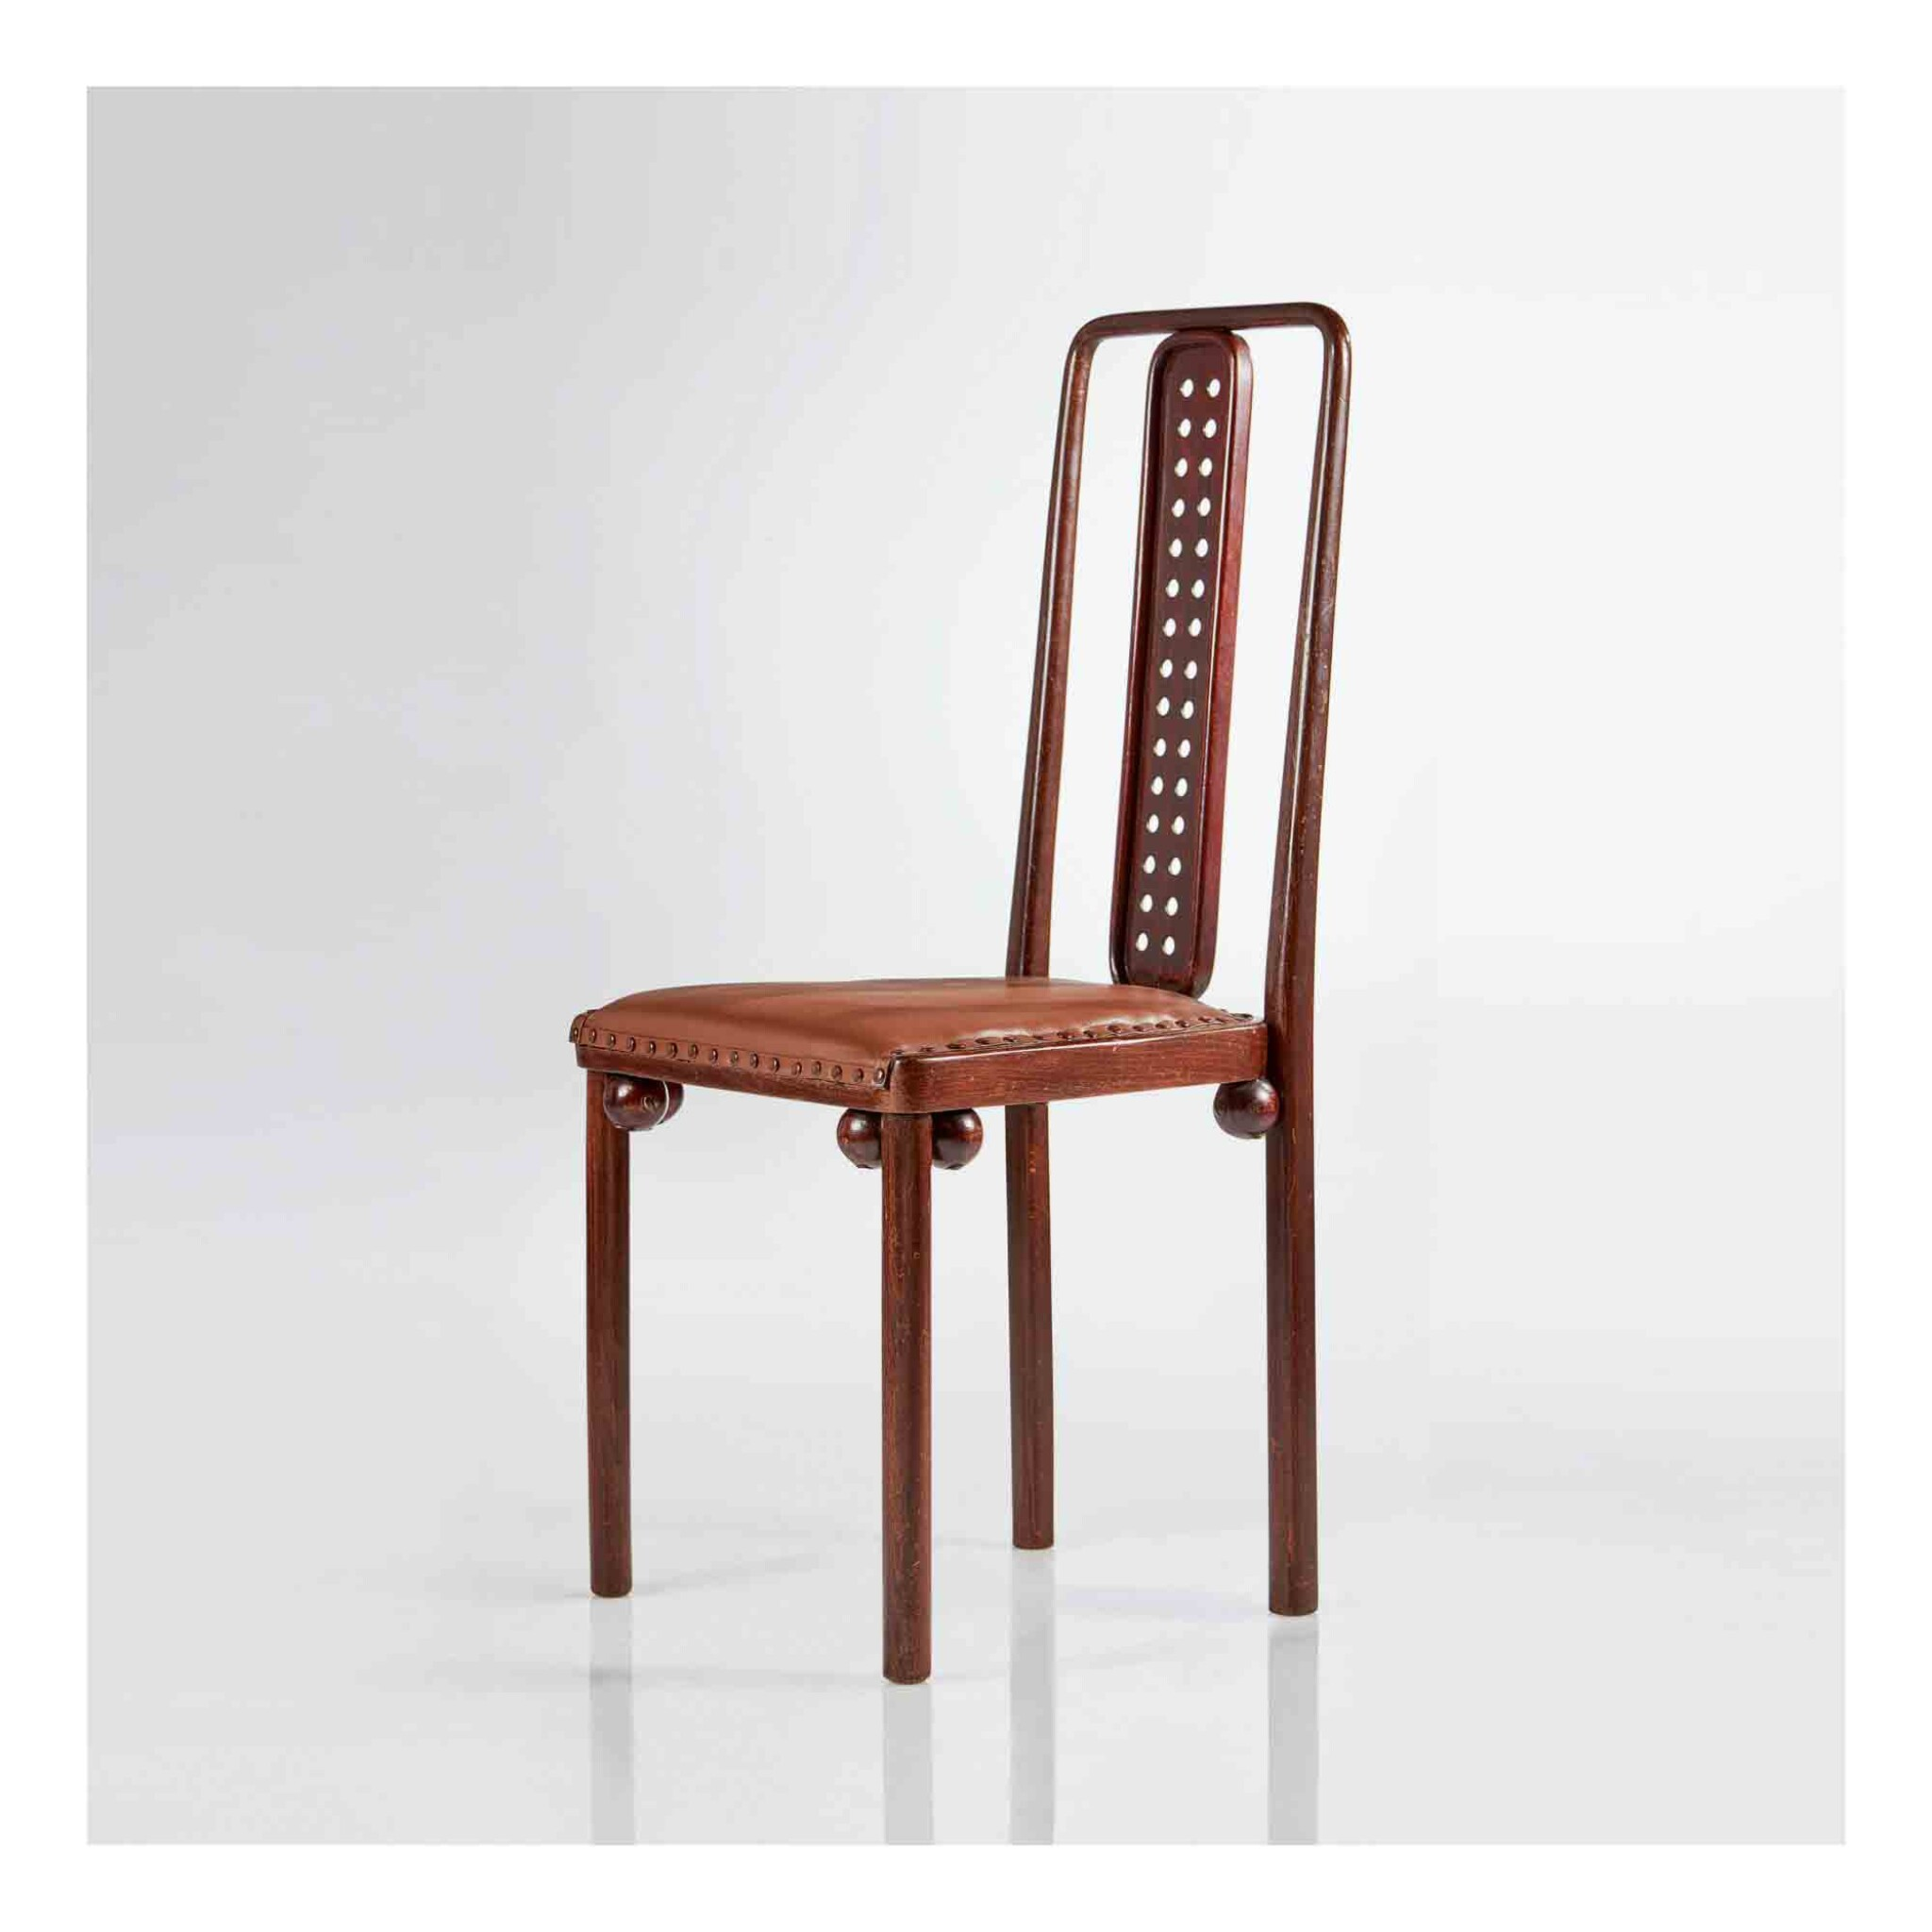 View 1 of Lot 340. Side Chair, Model No. 322.